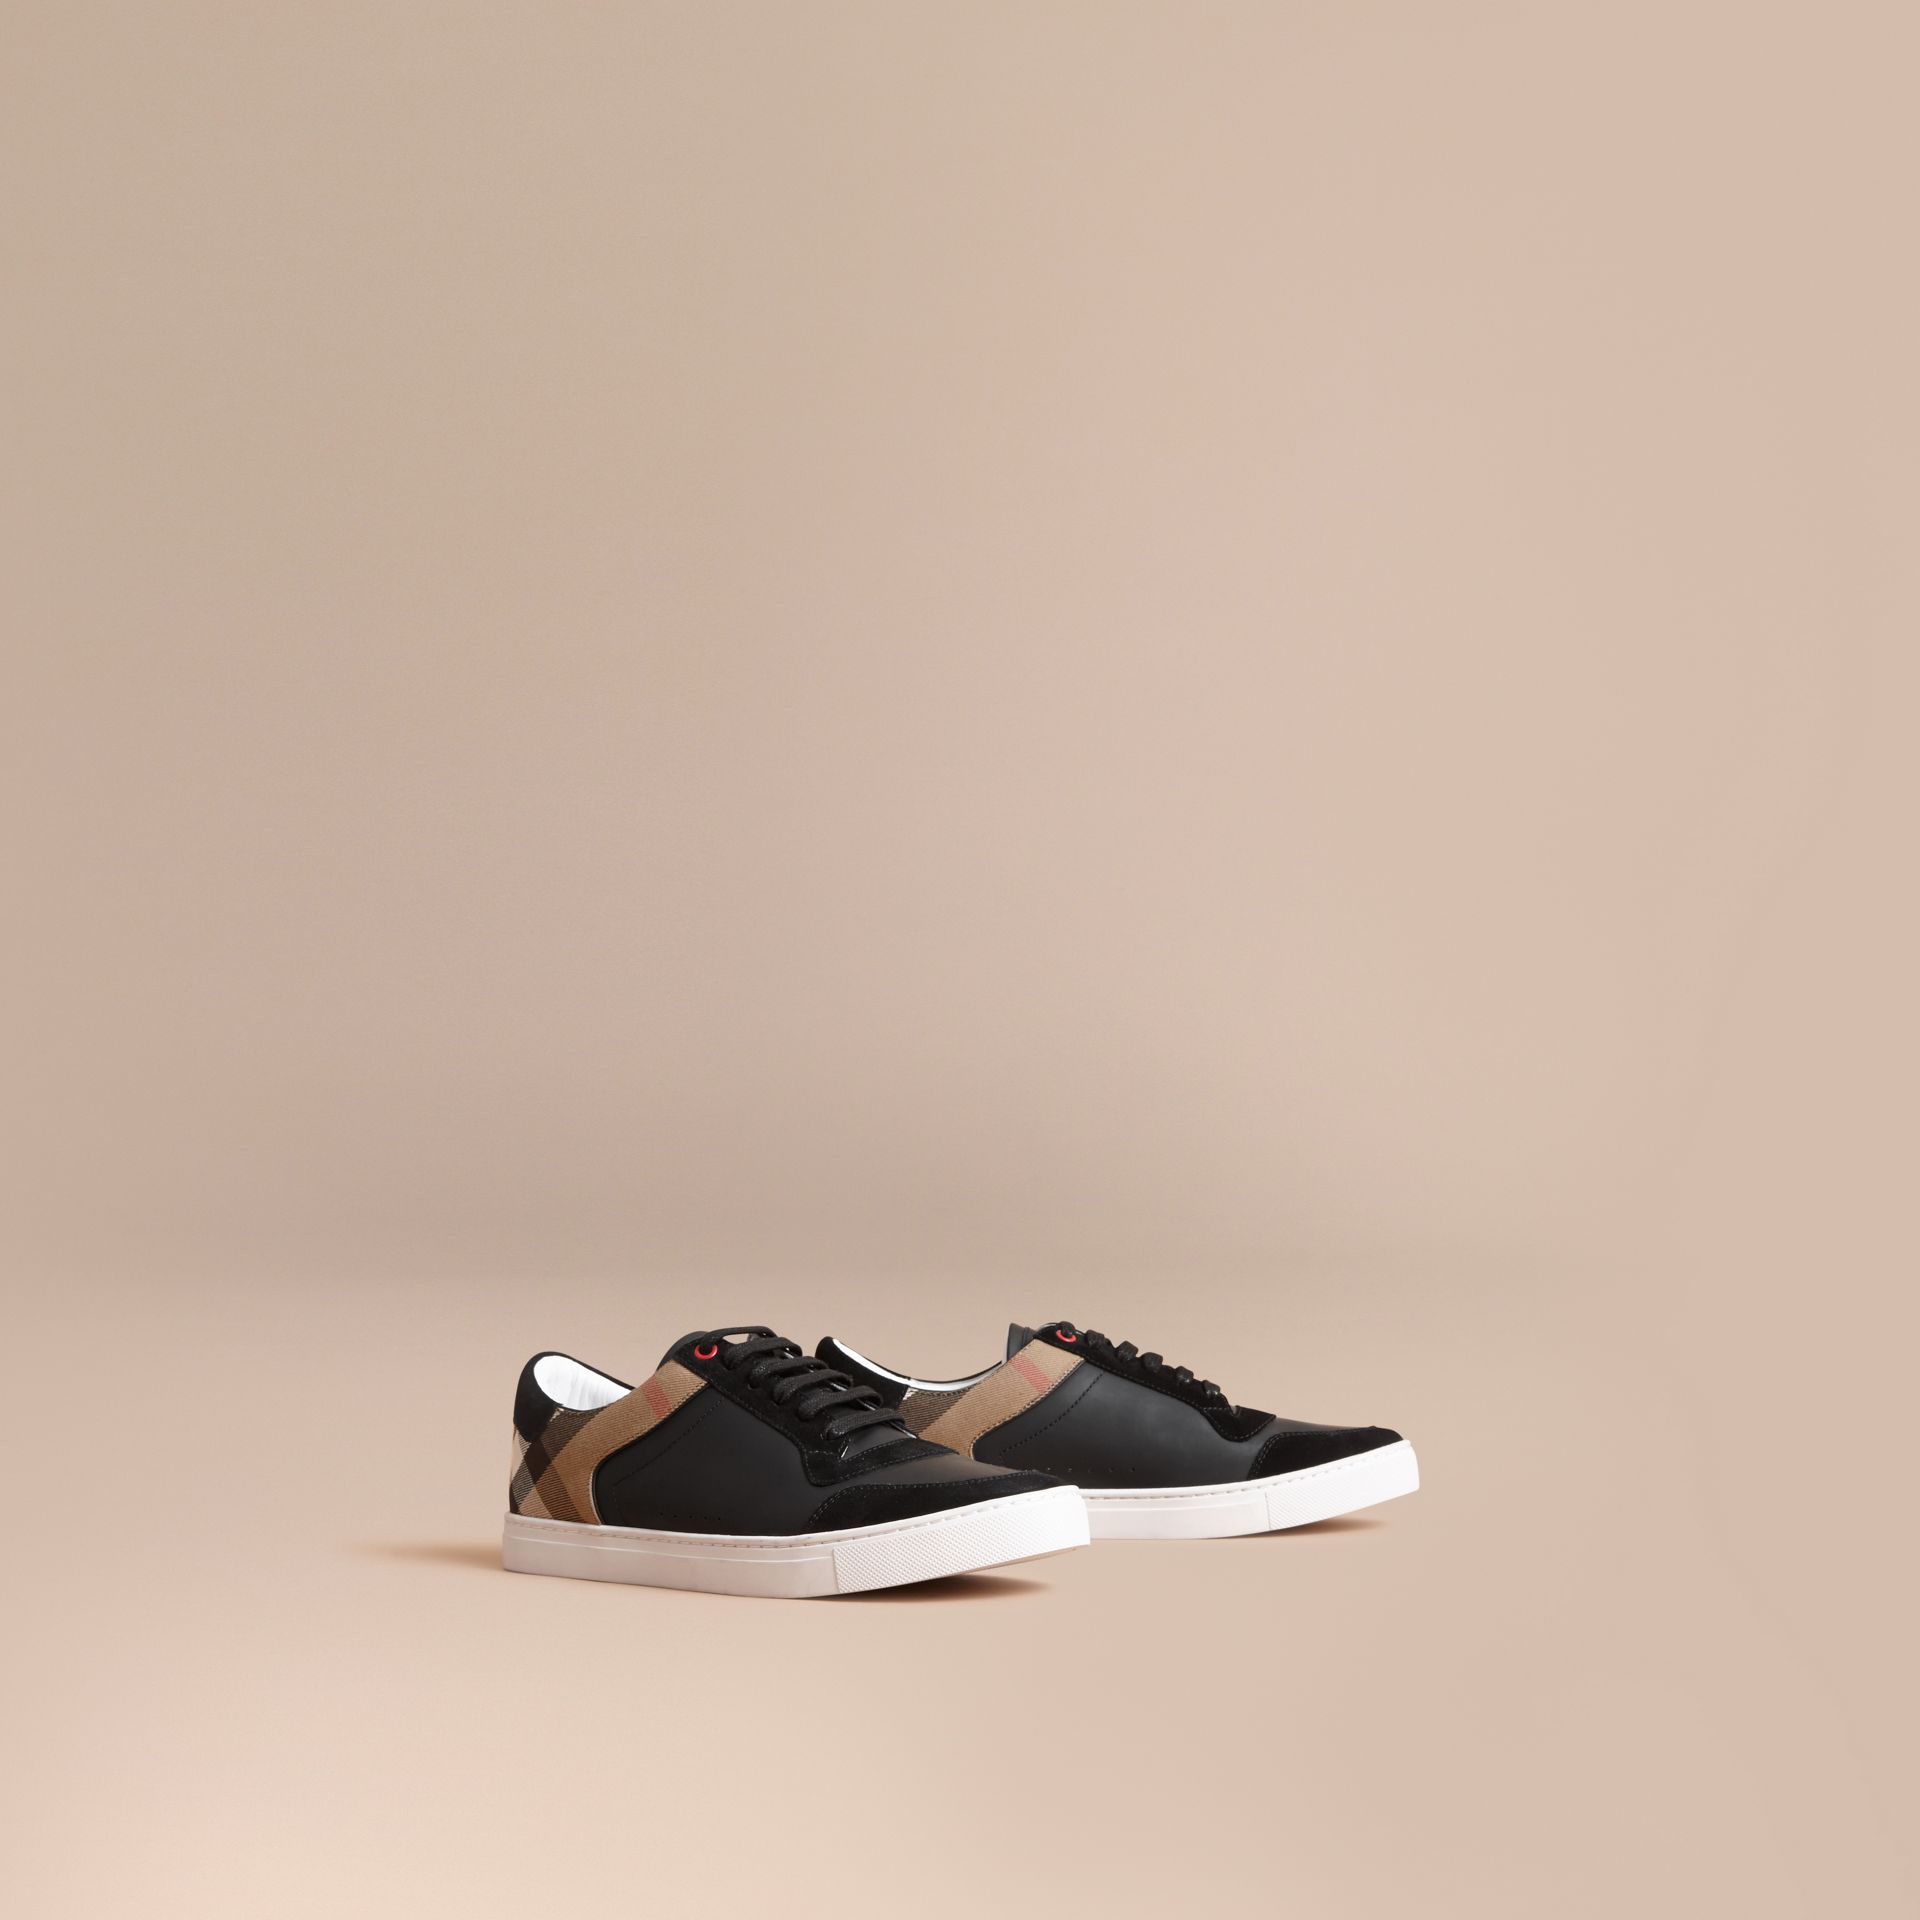 Tennis en cuir avec motif House check (Noir) - Homme | Burberry - photo de la galerie 1